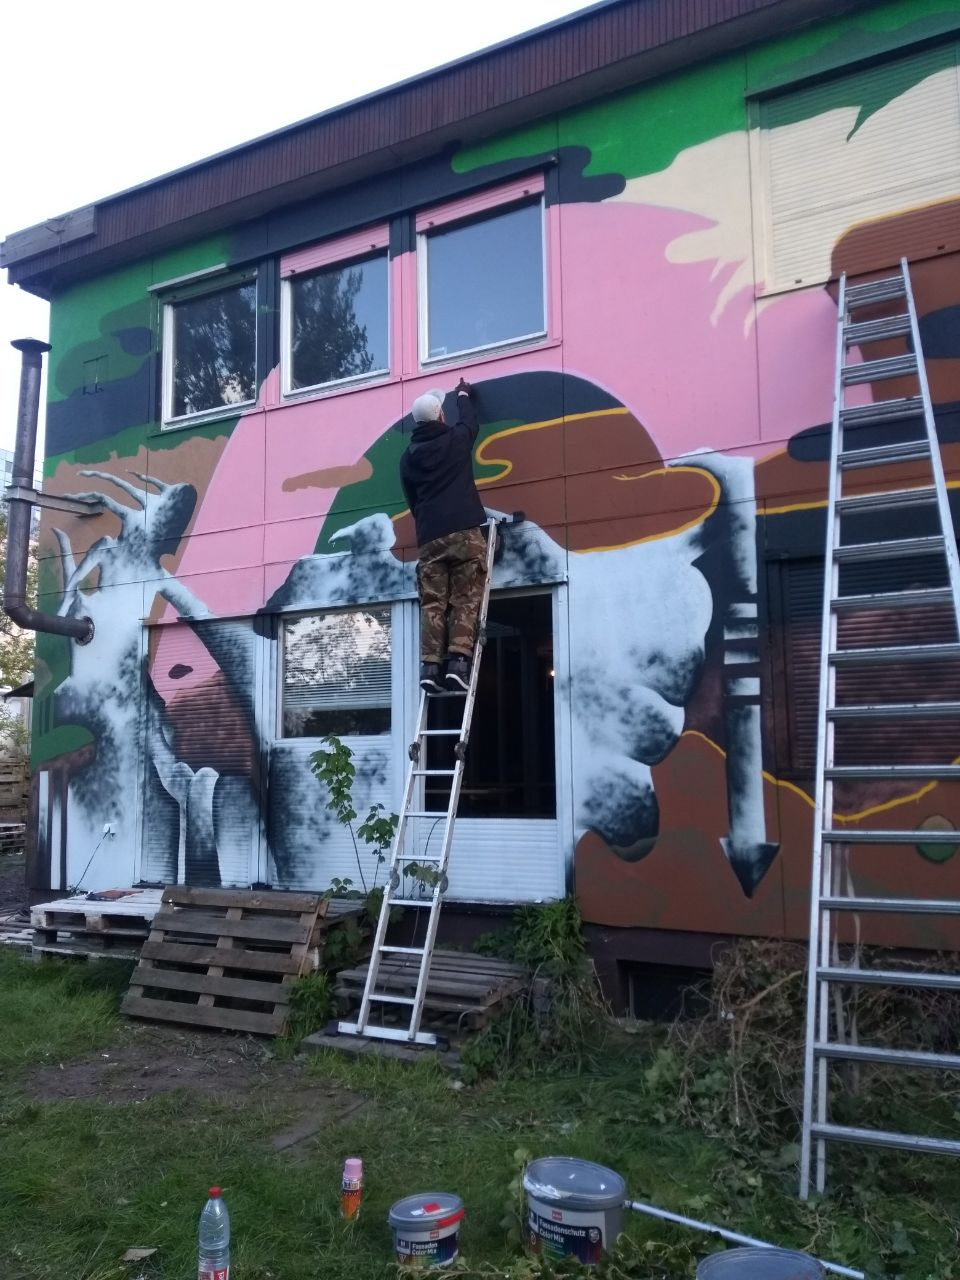 Bulky Savage at work on a collaboration with @abwasserschwimmer for the record store Latitude in Berlin. (Photo supplied by Bulky Savage)